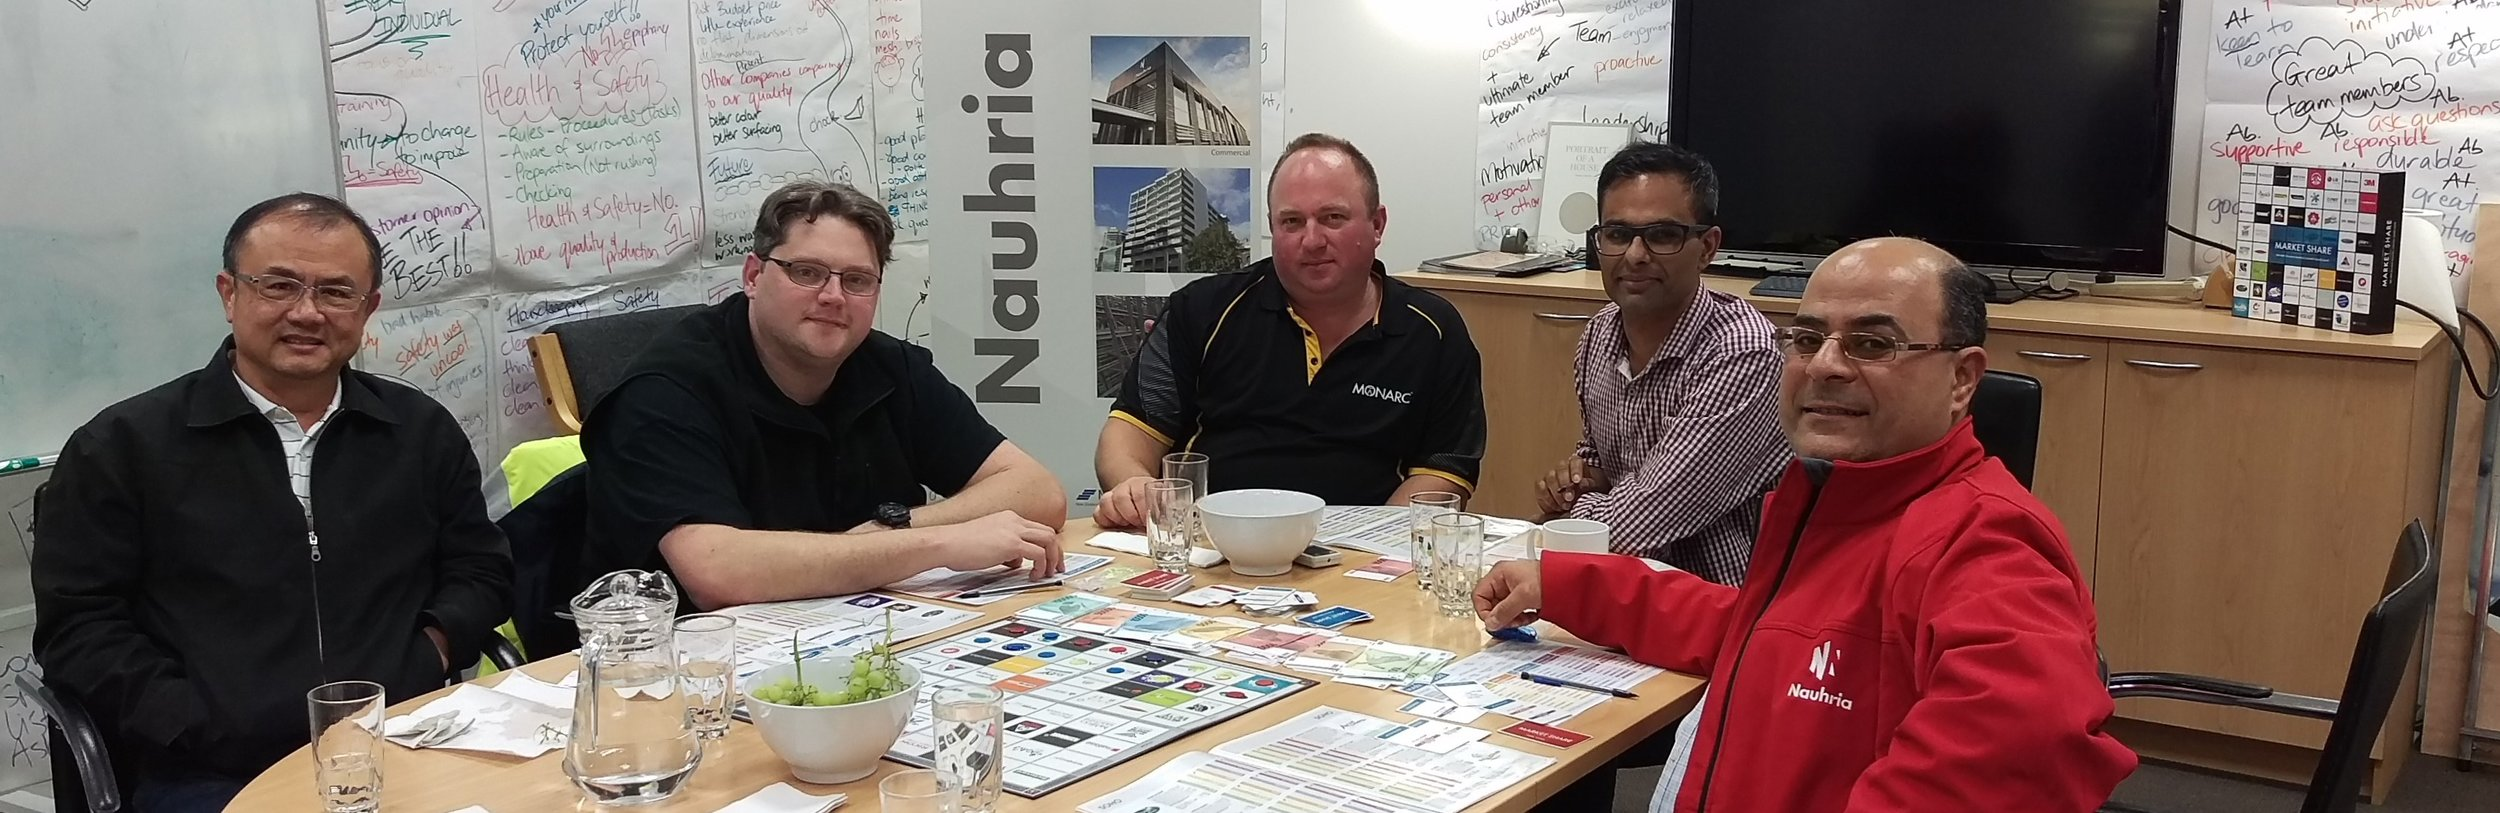 NAUHRIA PRECAST - Management team meet around a game of Market Share - www.nauhria.co.nz